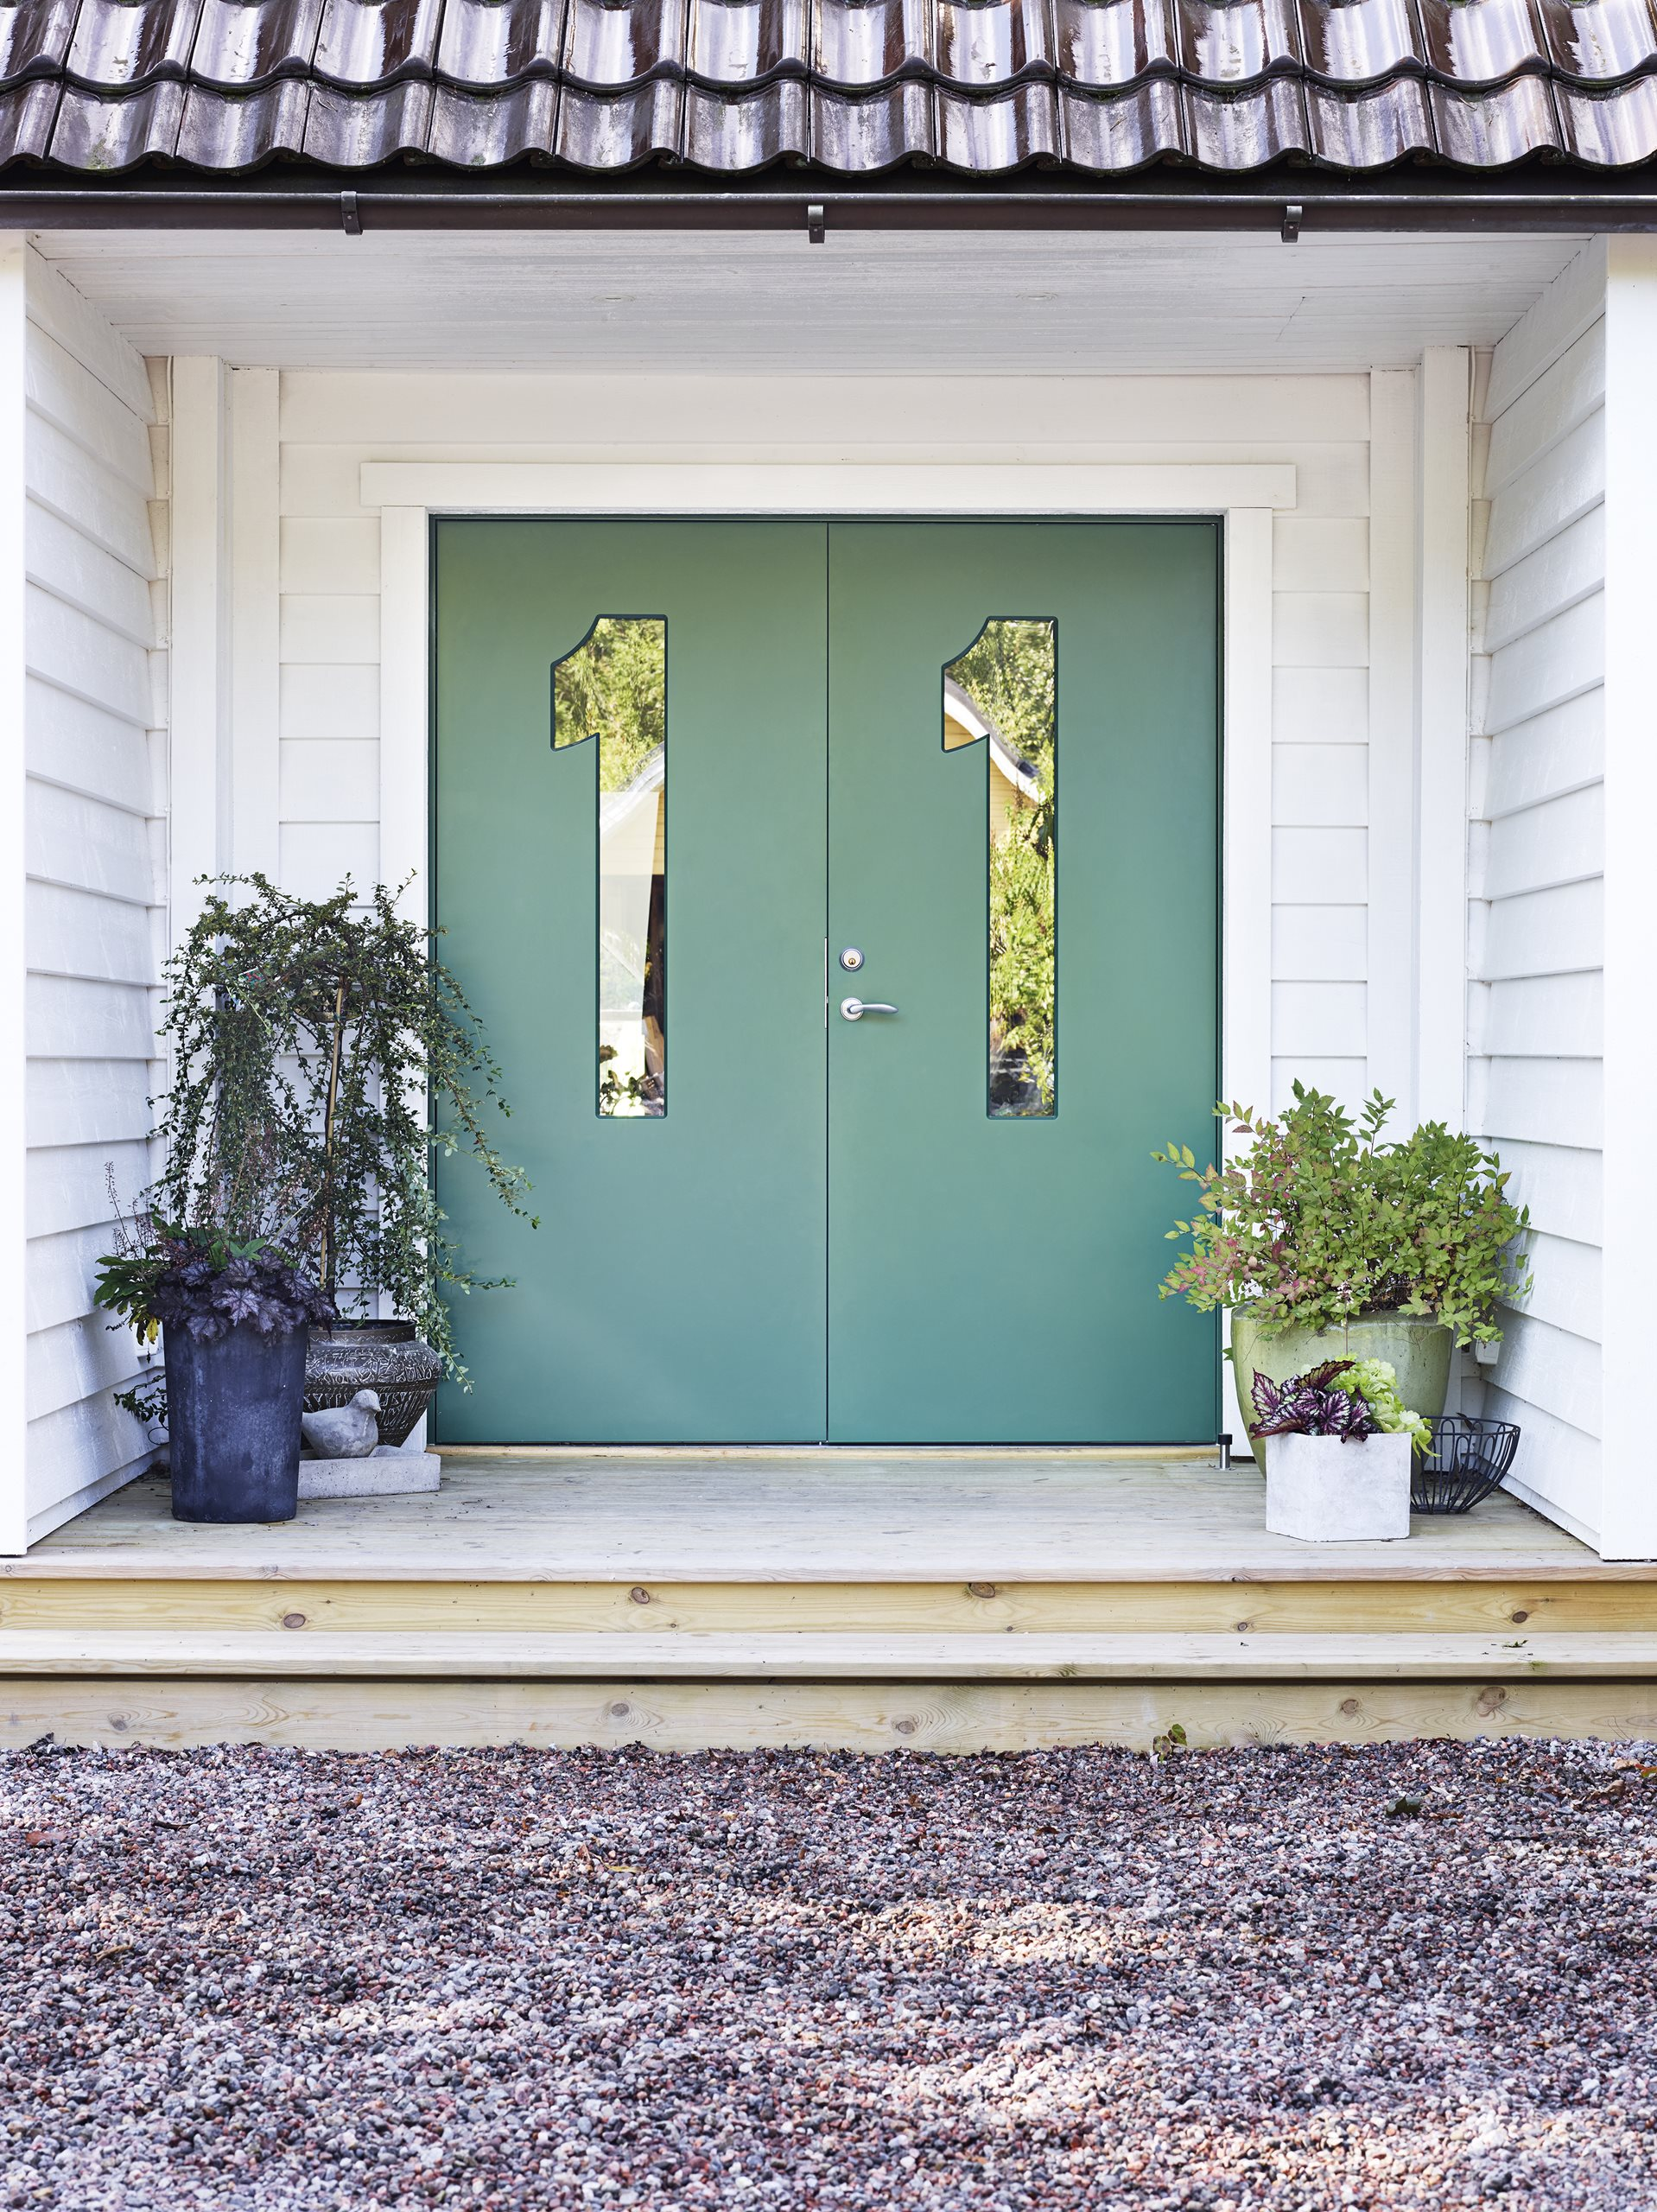 Identity-double-door-green-scenery